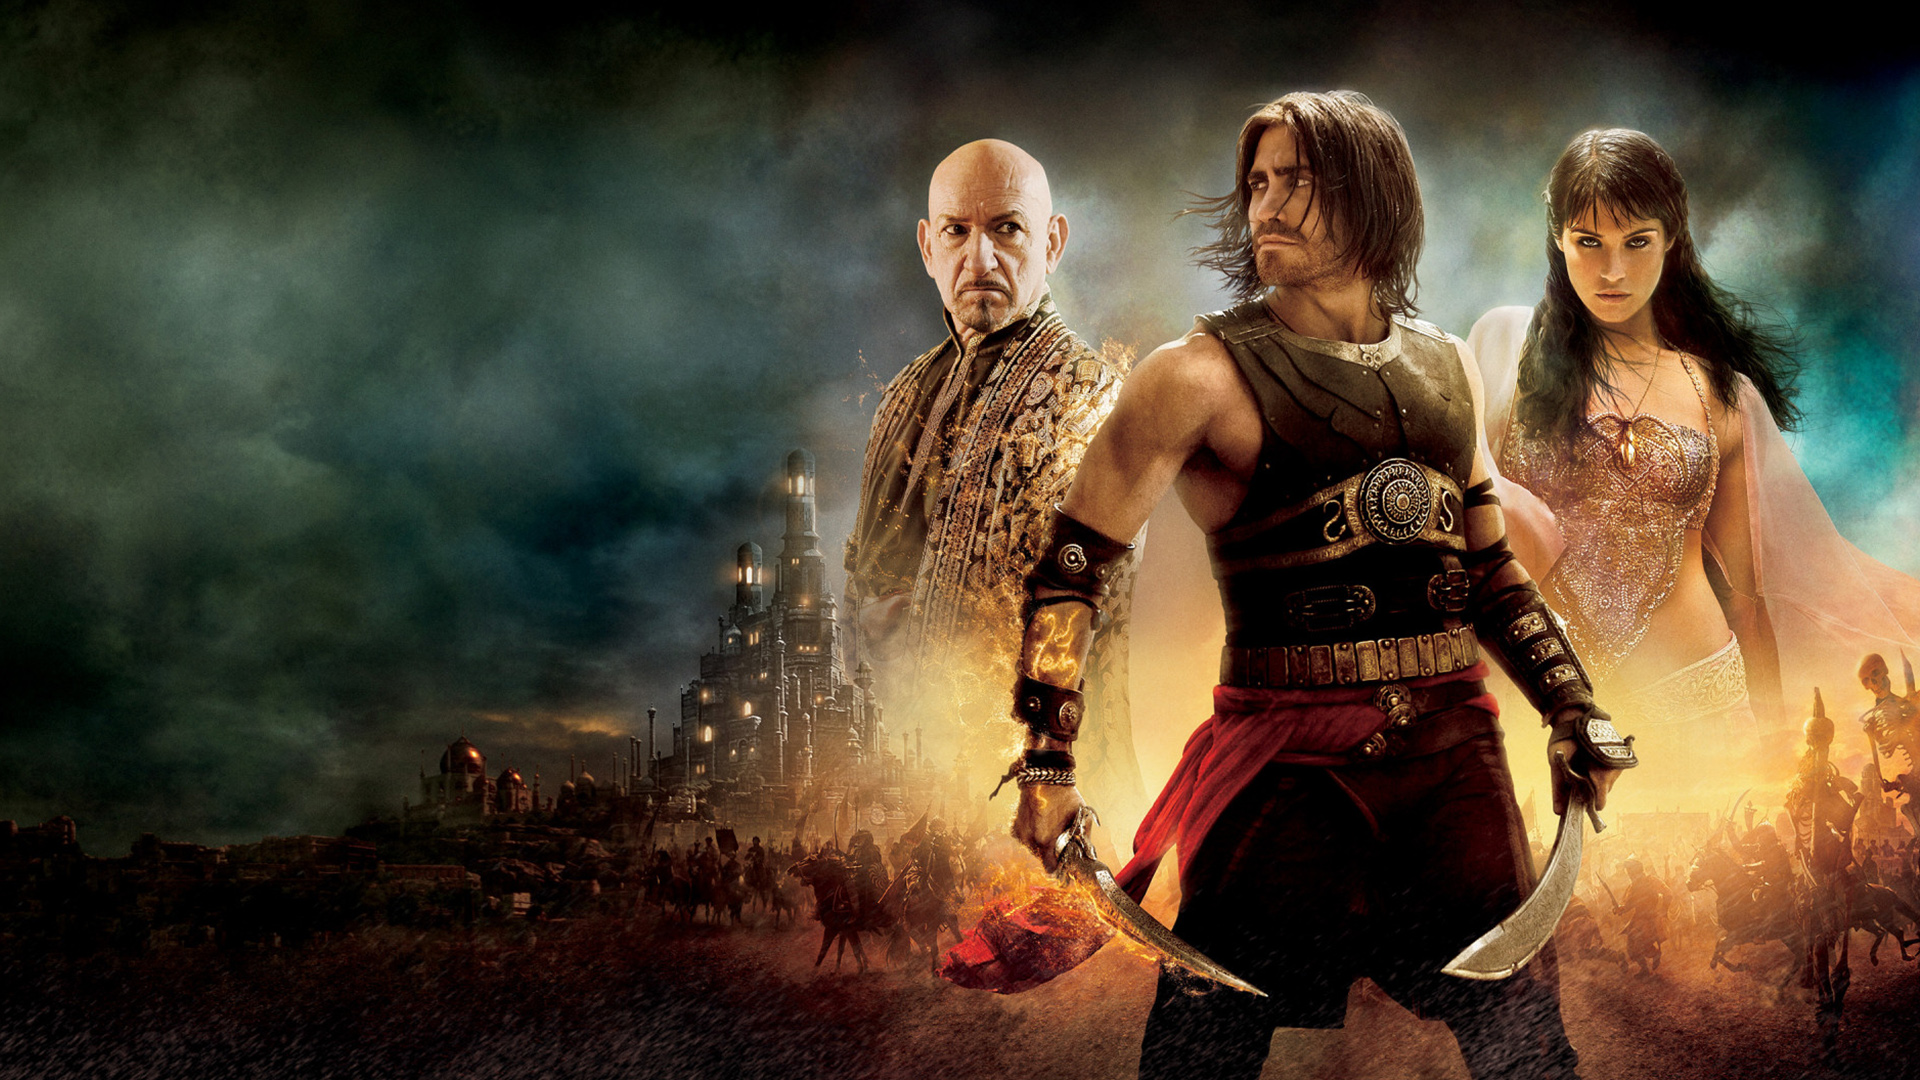 Prince Of Persia: The Sands Of Time Wallpapers - Wallpaper ... |Prince Of Persia Movie Wallpapers